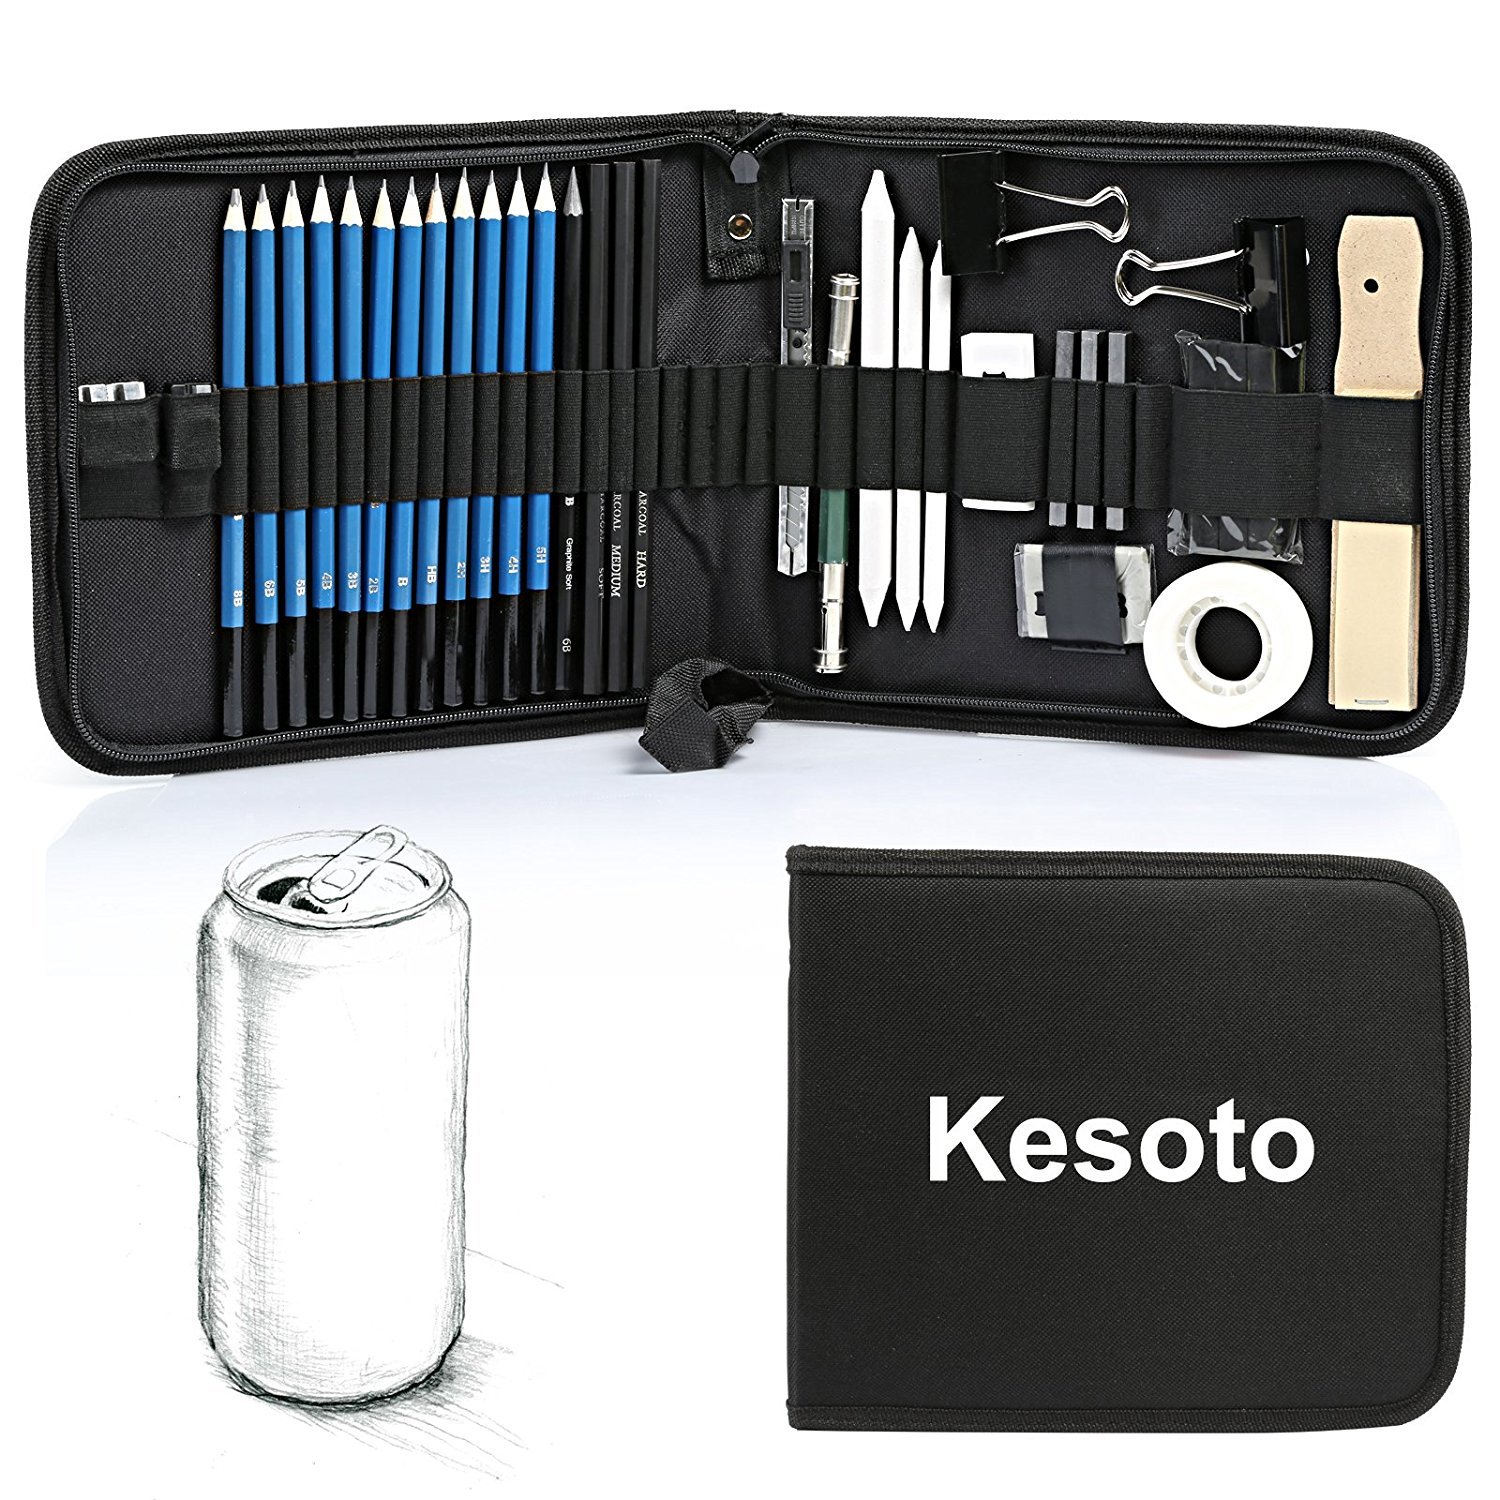 Kesoto 35 Pieces Art Supplies Drawing and Sketching Pencils Set with Graphite & Charcoal Pencils, Sticks and Tools by Kesoto